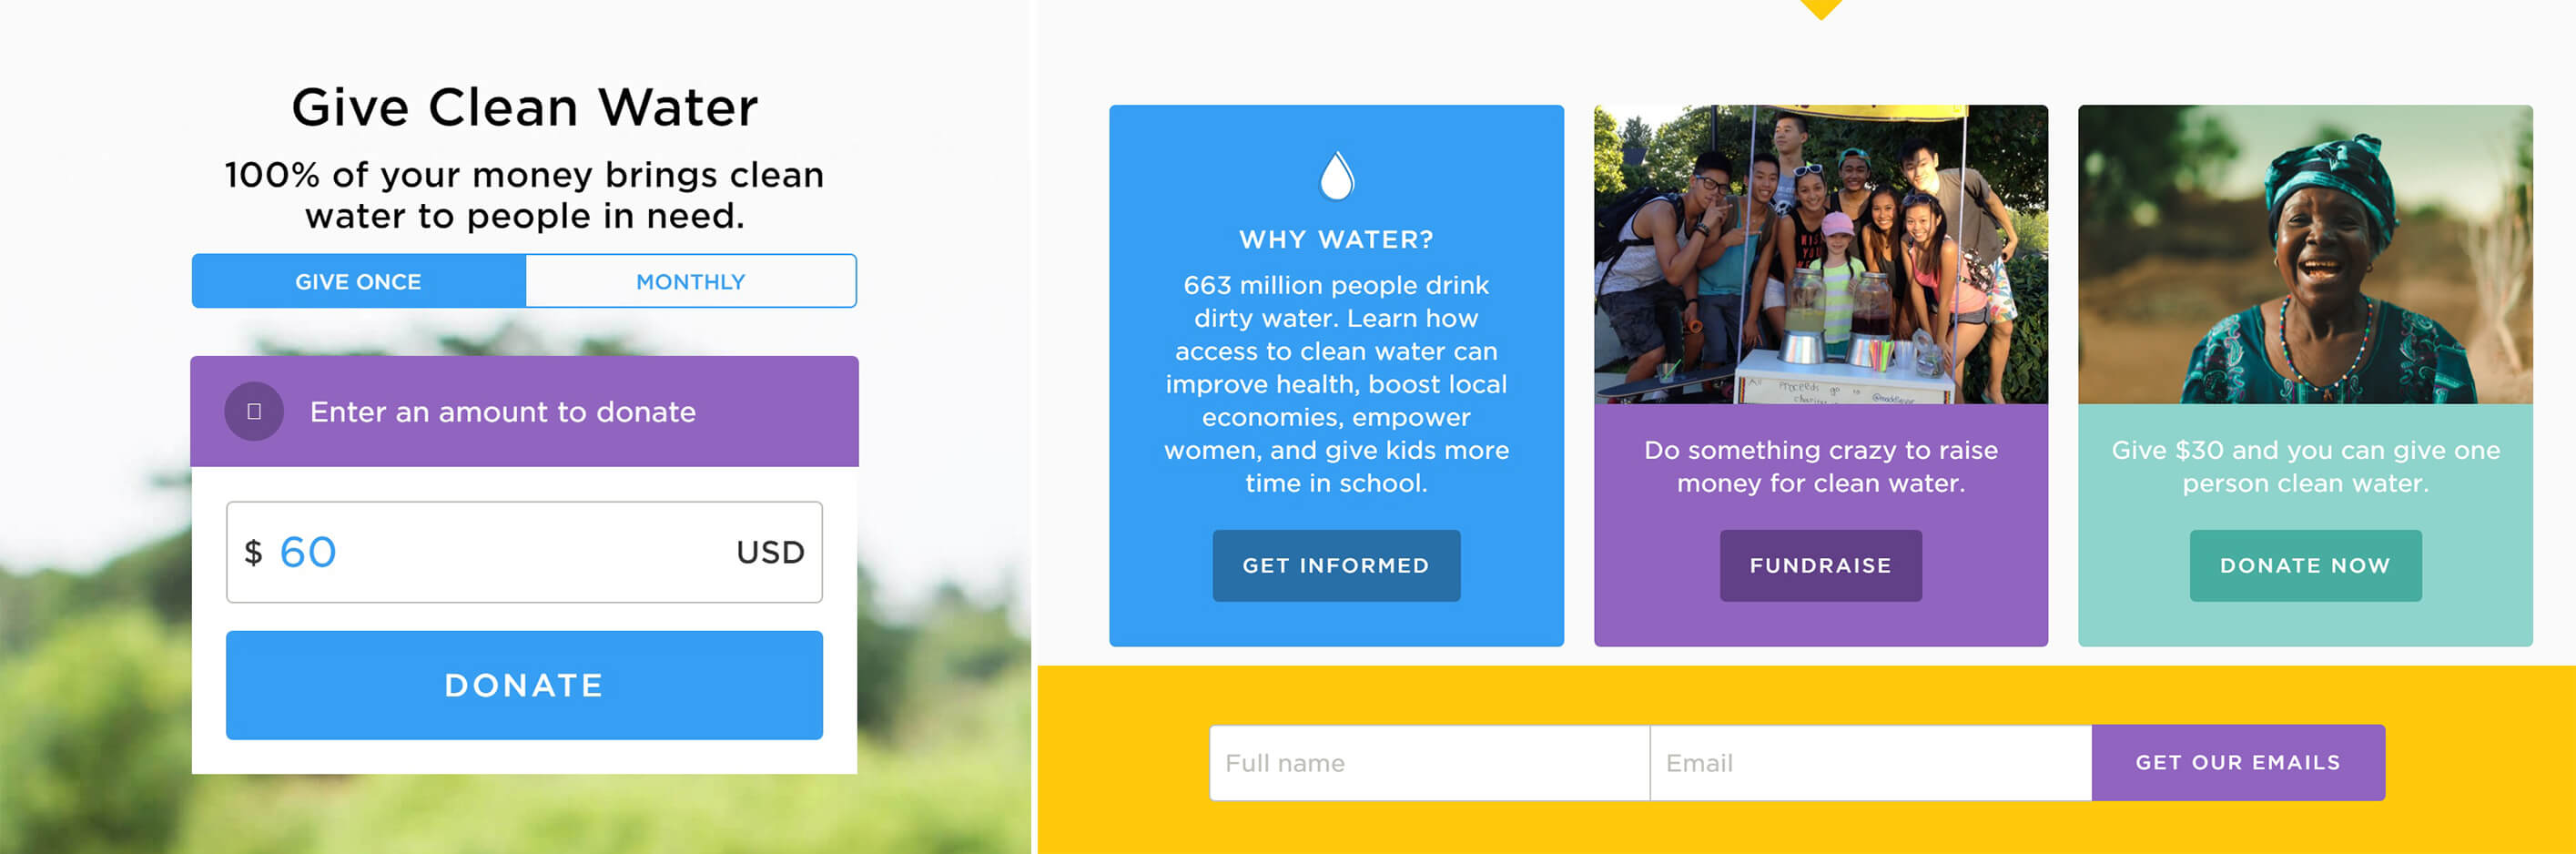 How Did Charity Water's Site Help them Raise 30 Million Dollars? calls to action